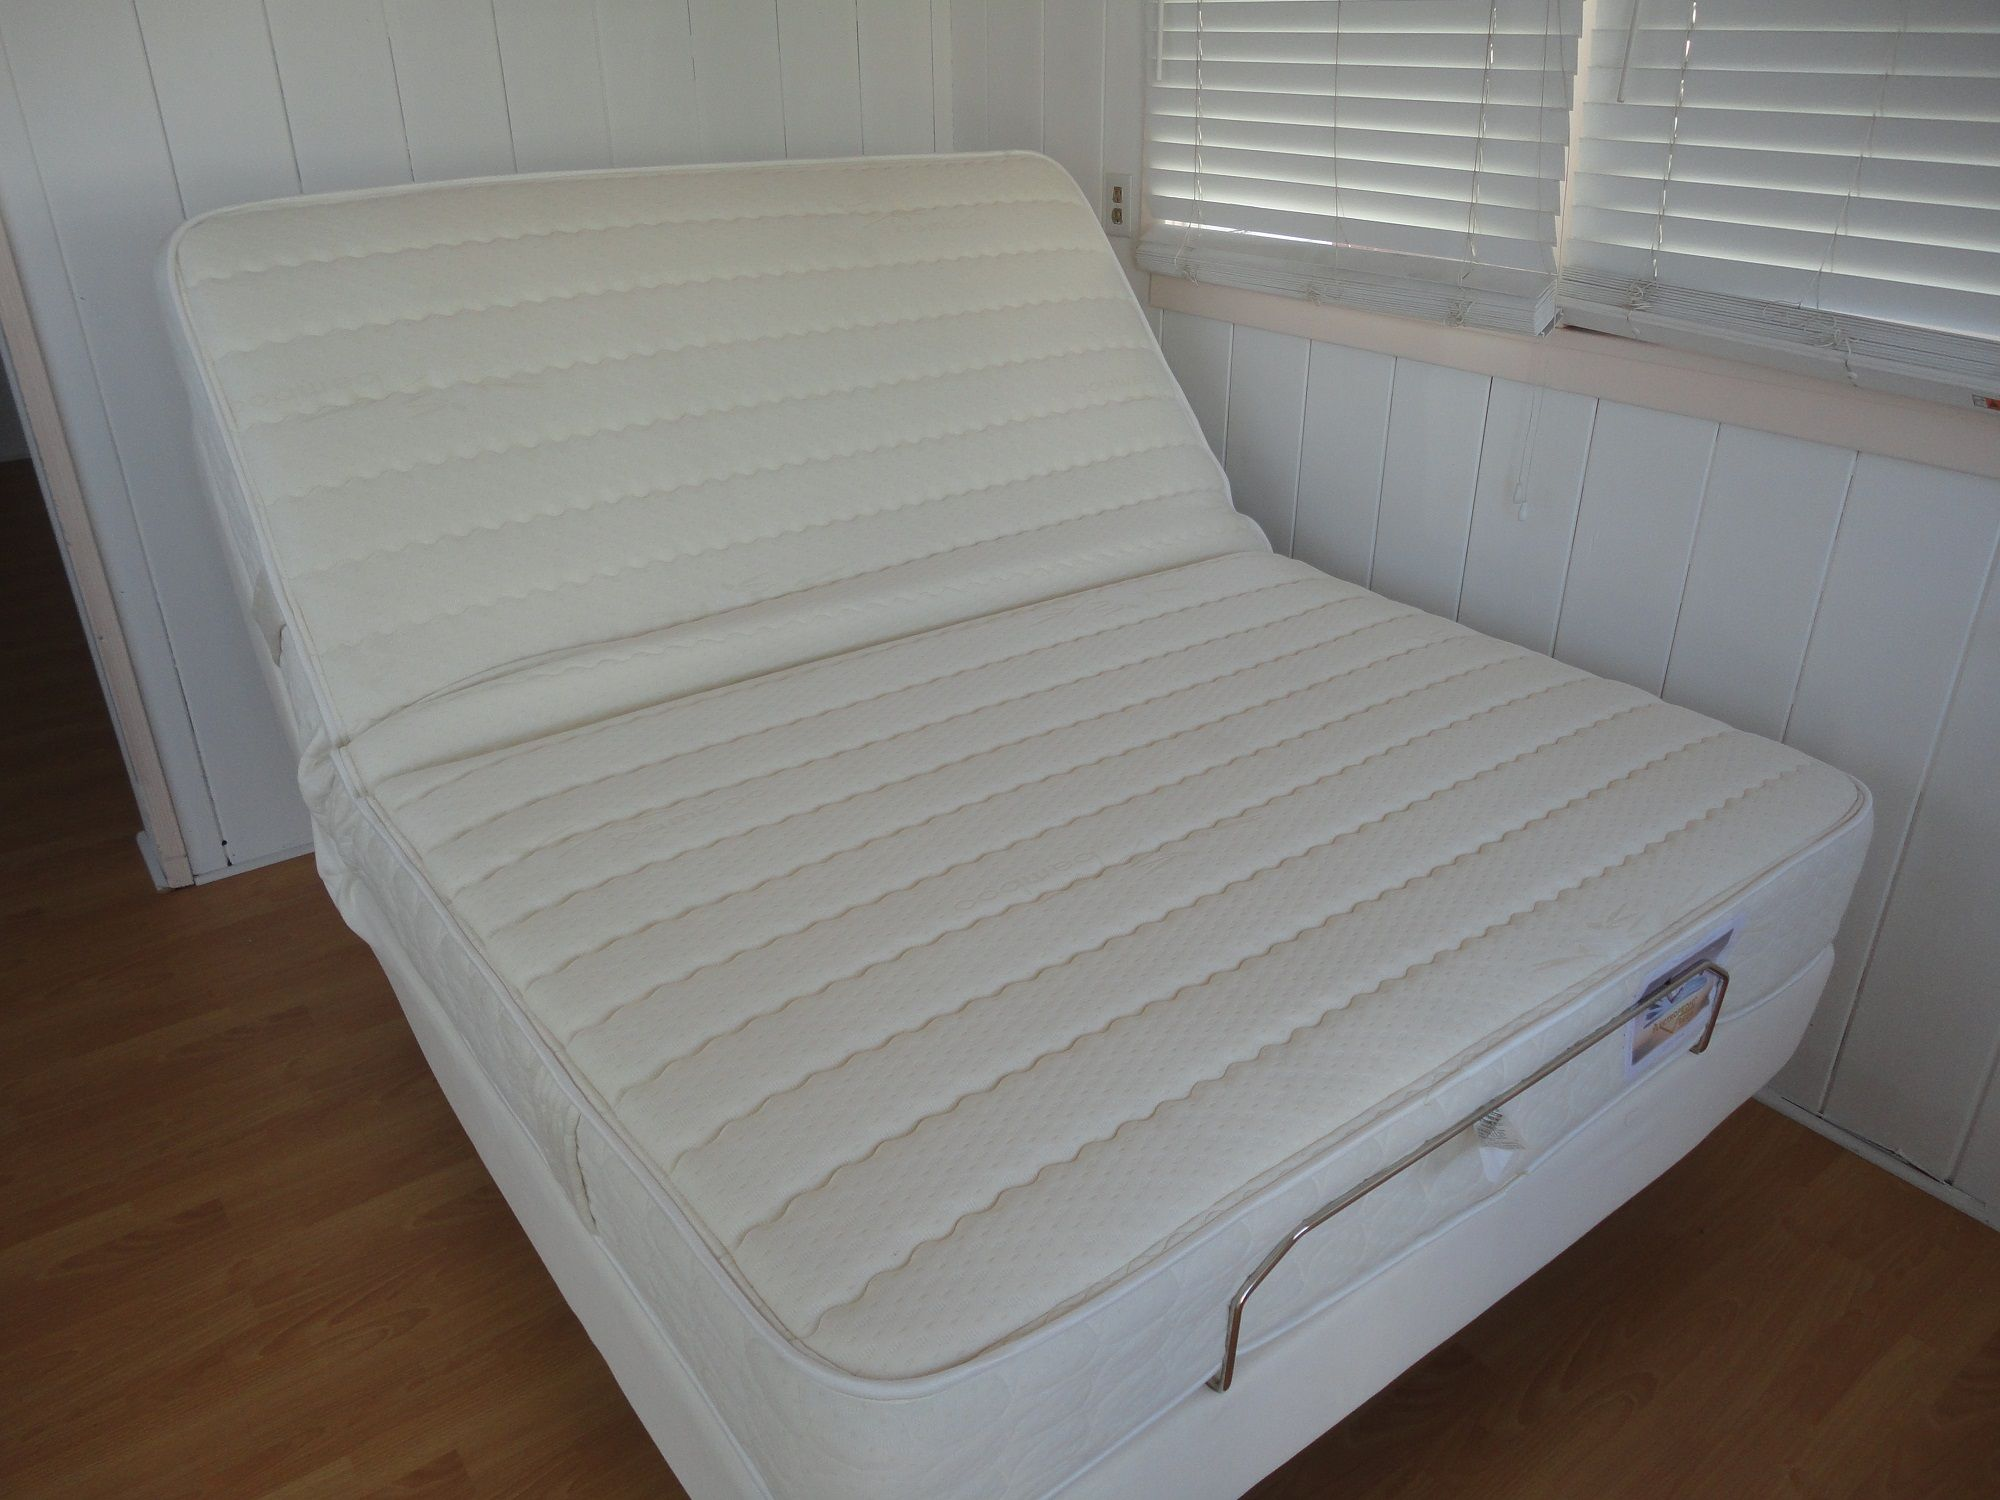 Electric Bed King Size Bedroom Bedroom Queen Size Electric Bed Automatic